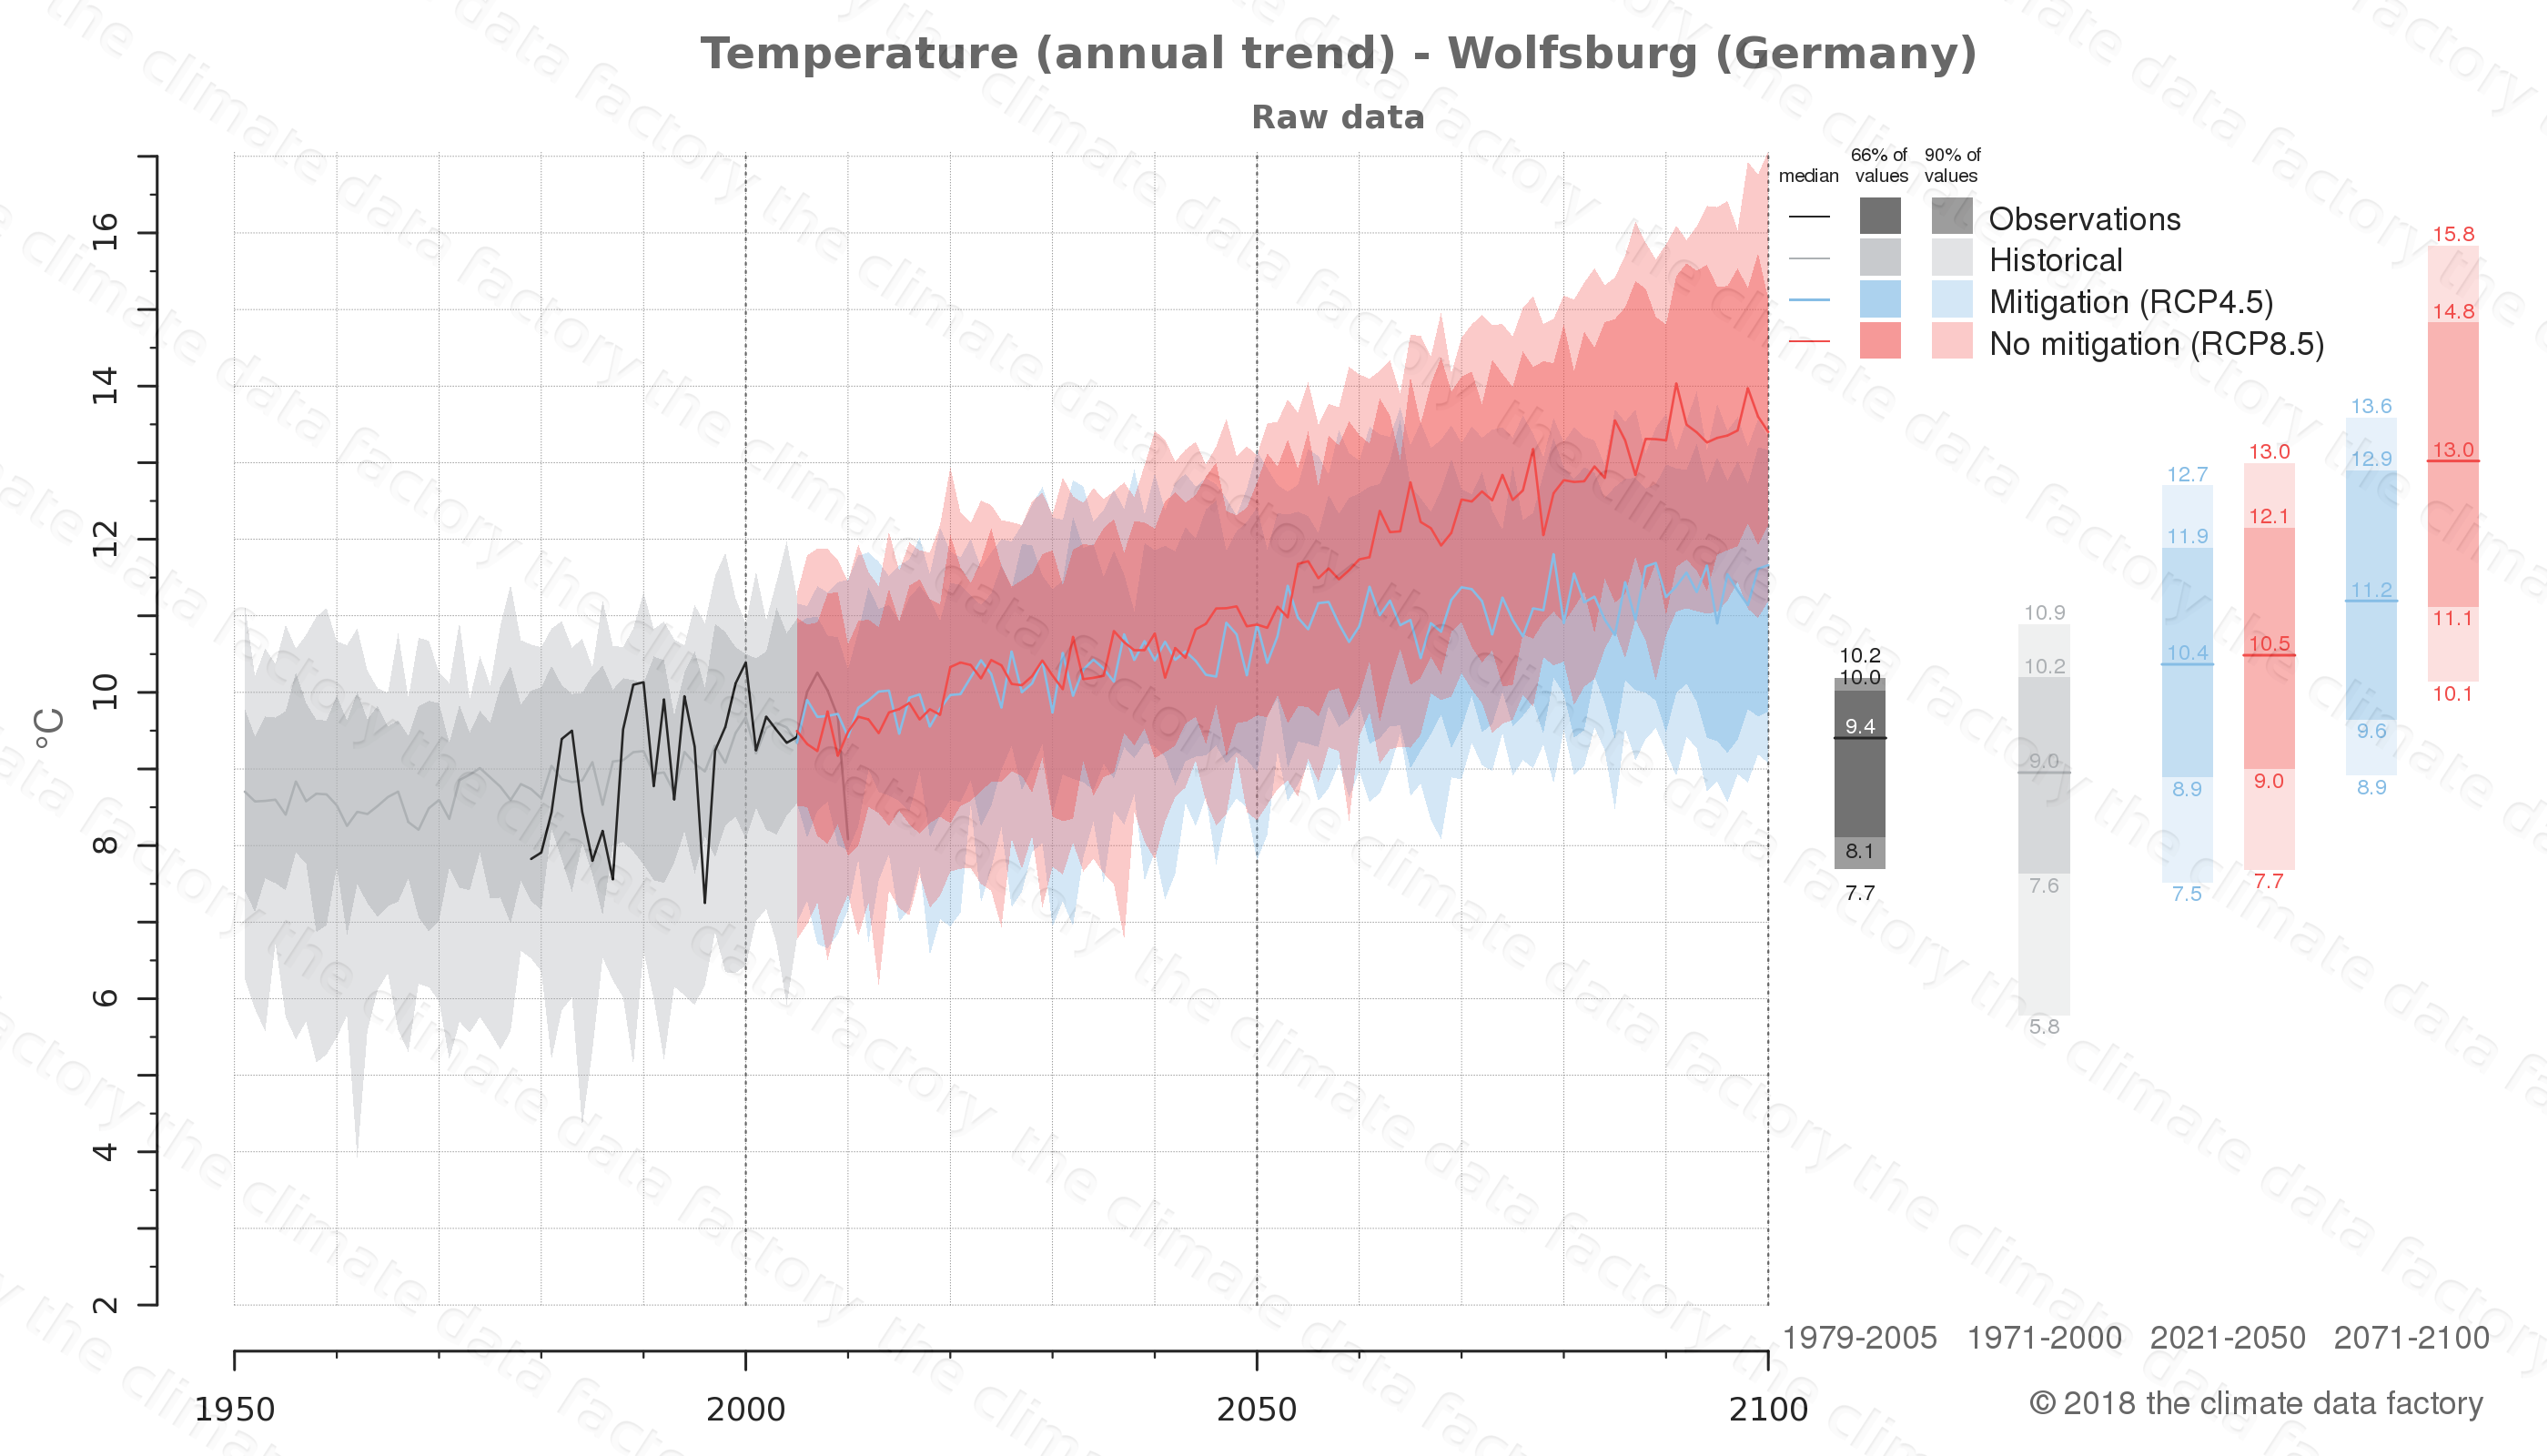 climate change data policy adaptation climate graph city data temperature wolfsburg germany